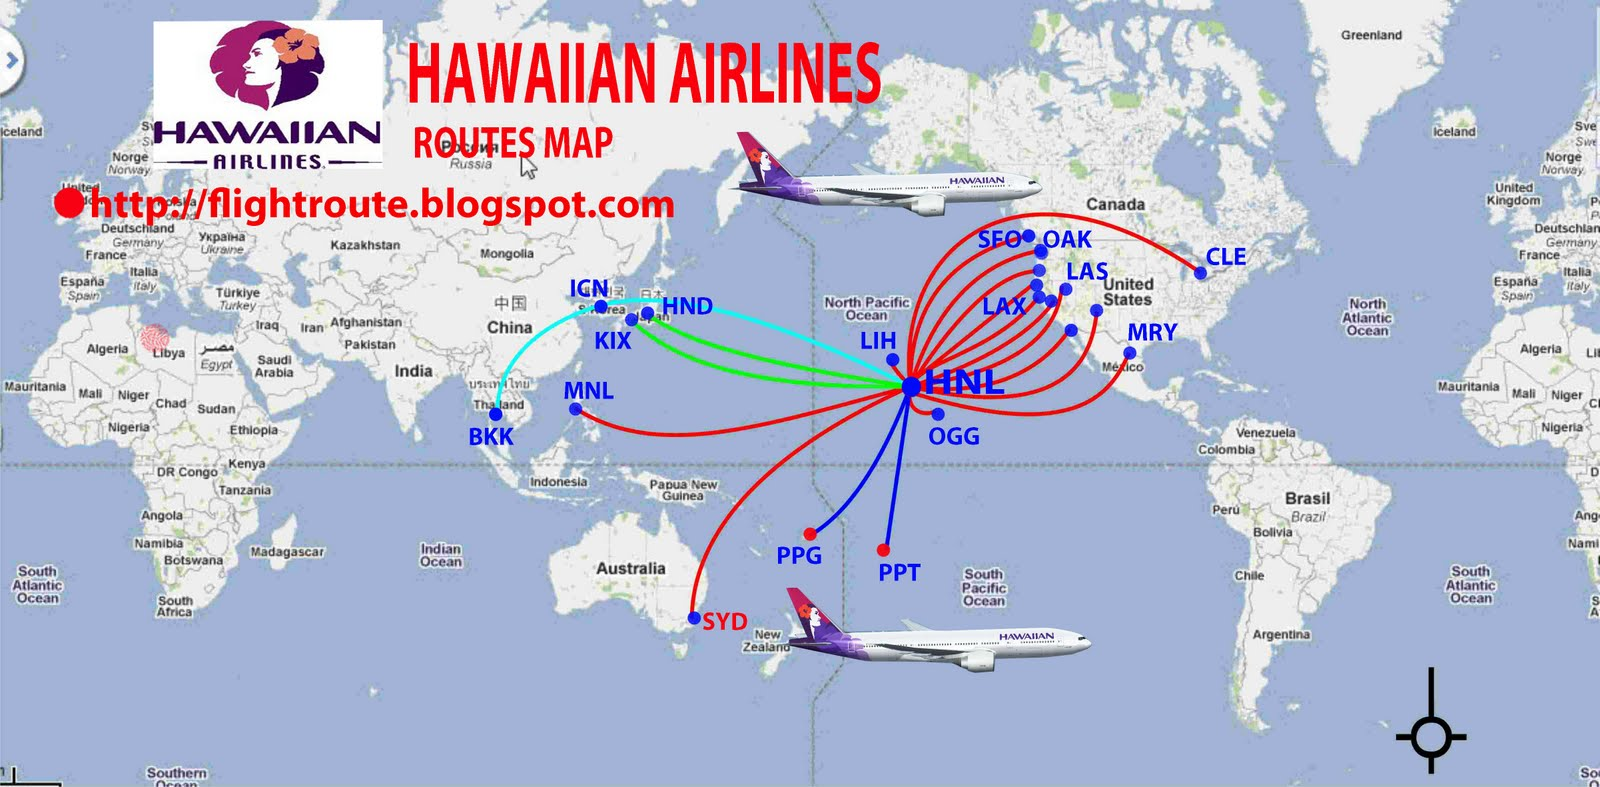 Hawaiian Airlines routes map | Design Plane